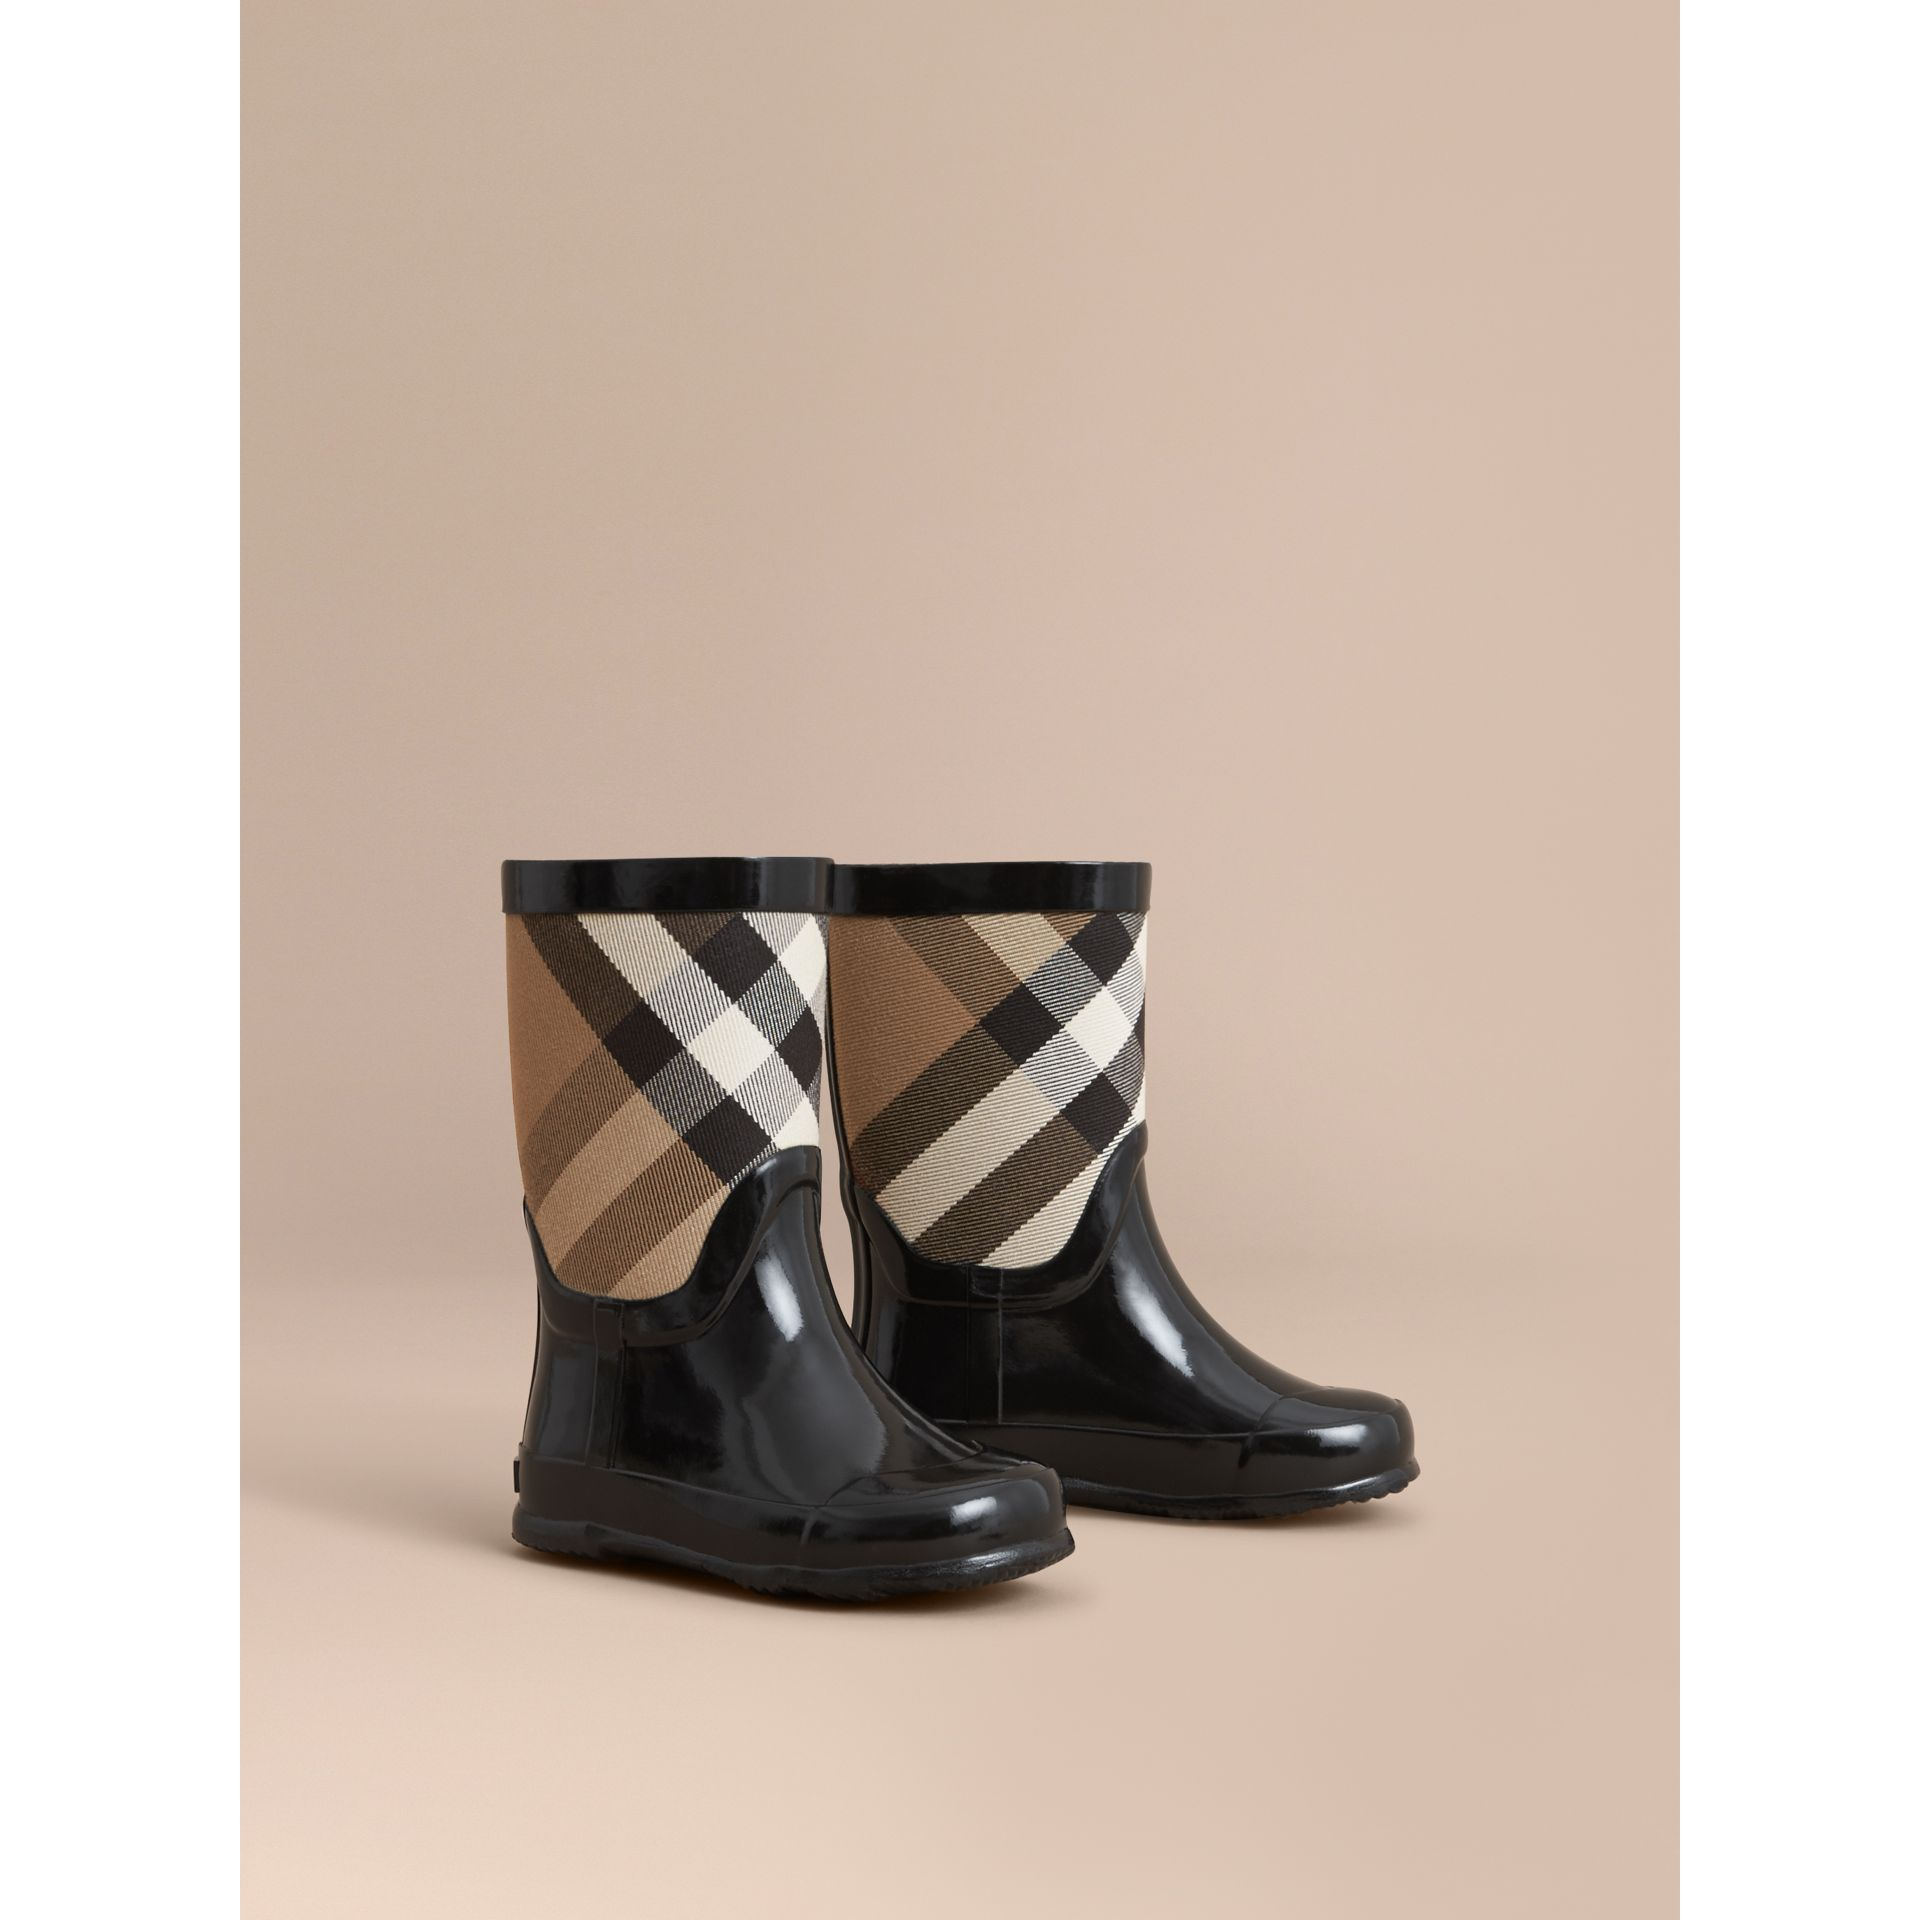 House Check Panel Rain Boots in Black | Burberry - gallery image 1